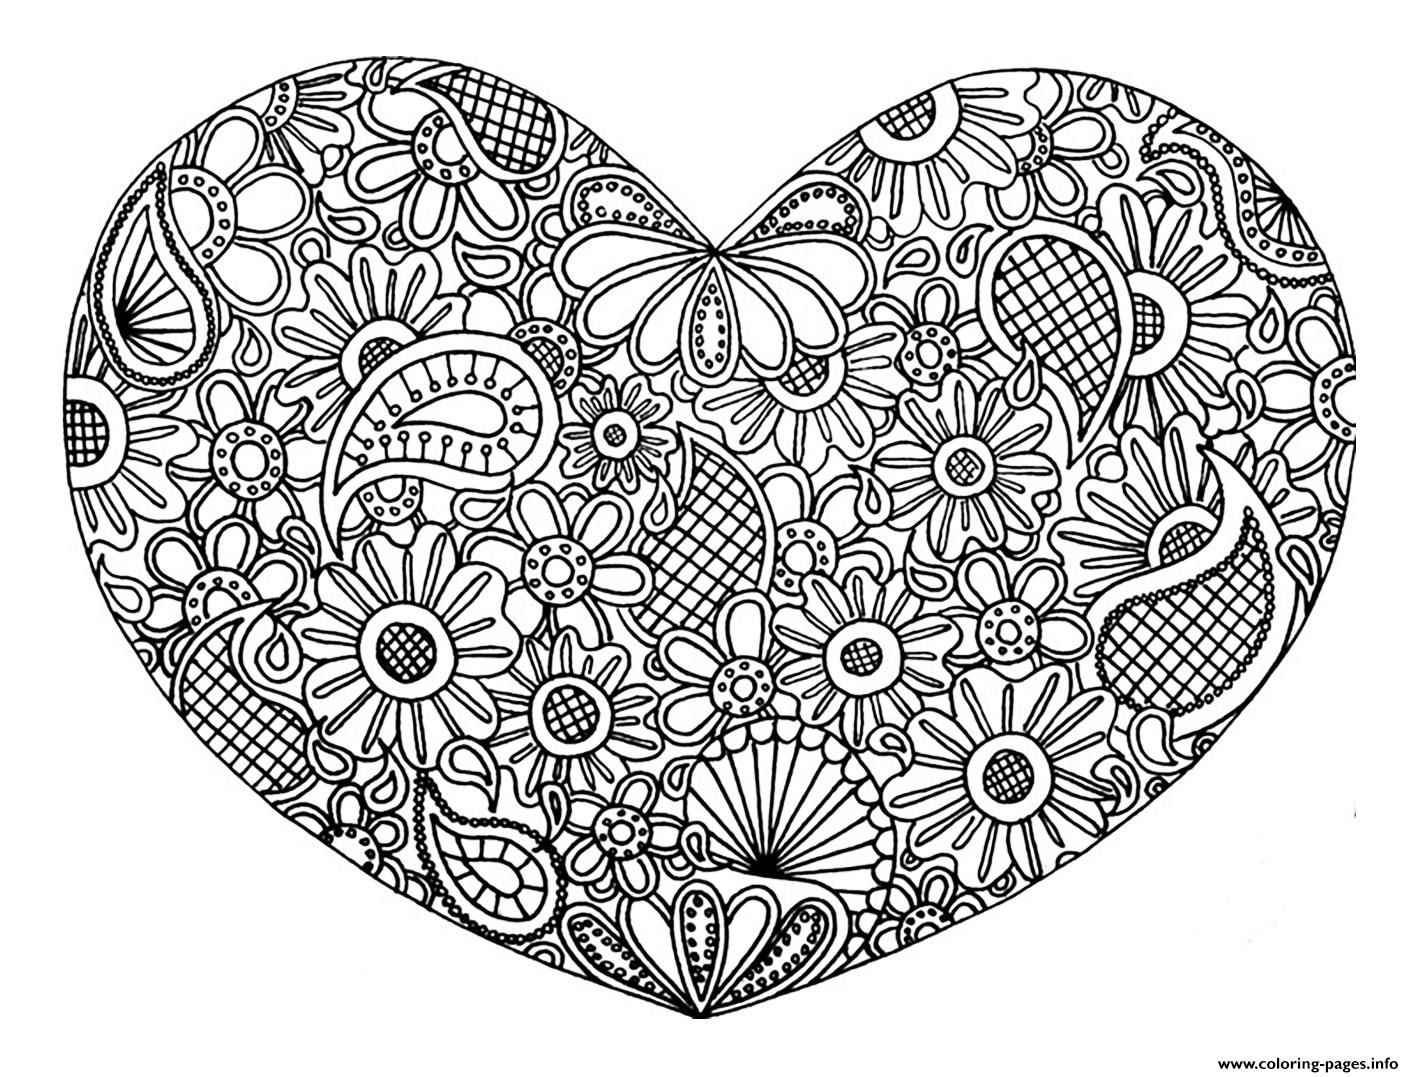 zen coloring pages - adult heart mandala fleurs zen 2017 coloring pages printable